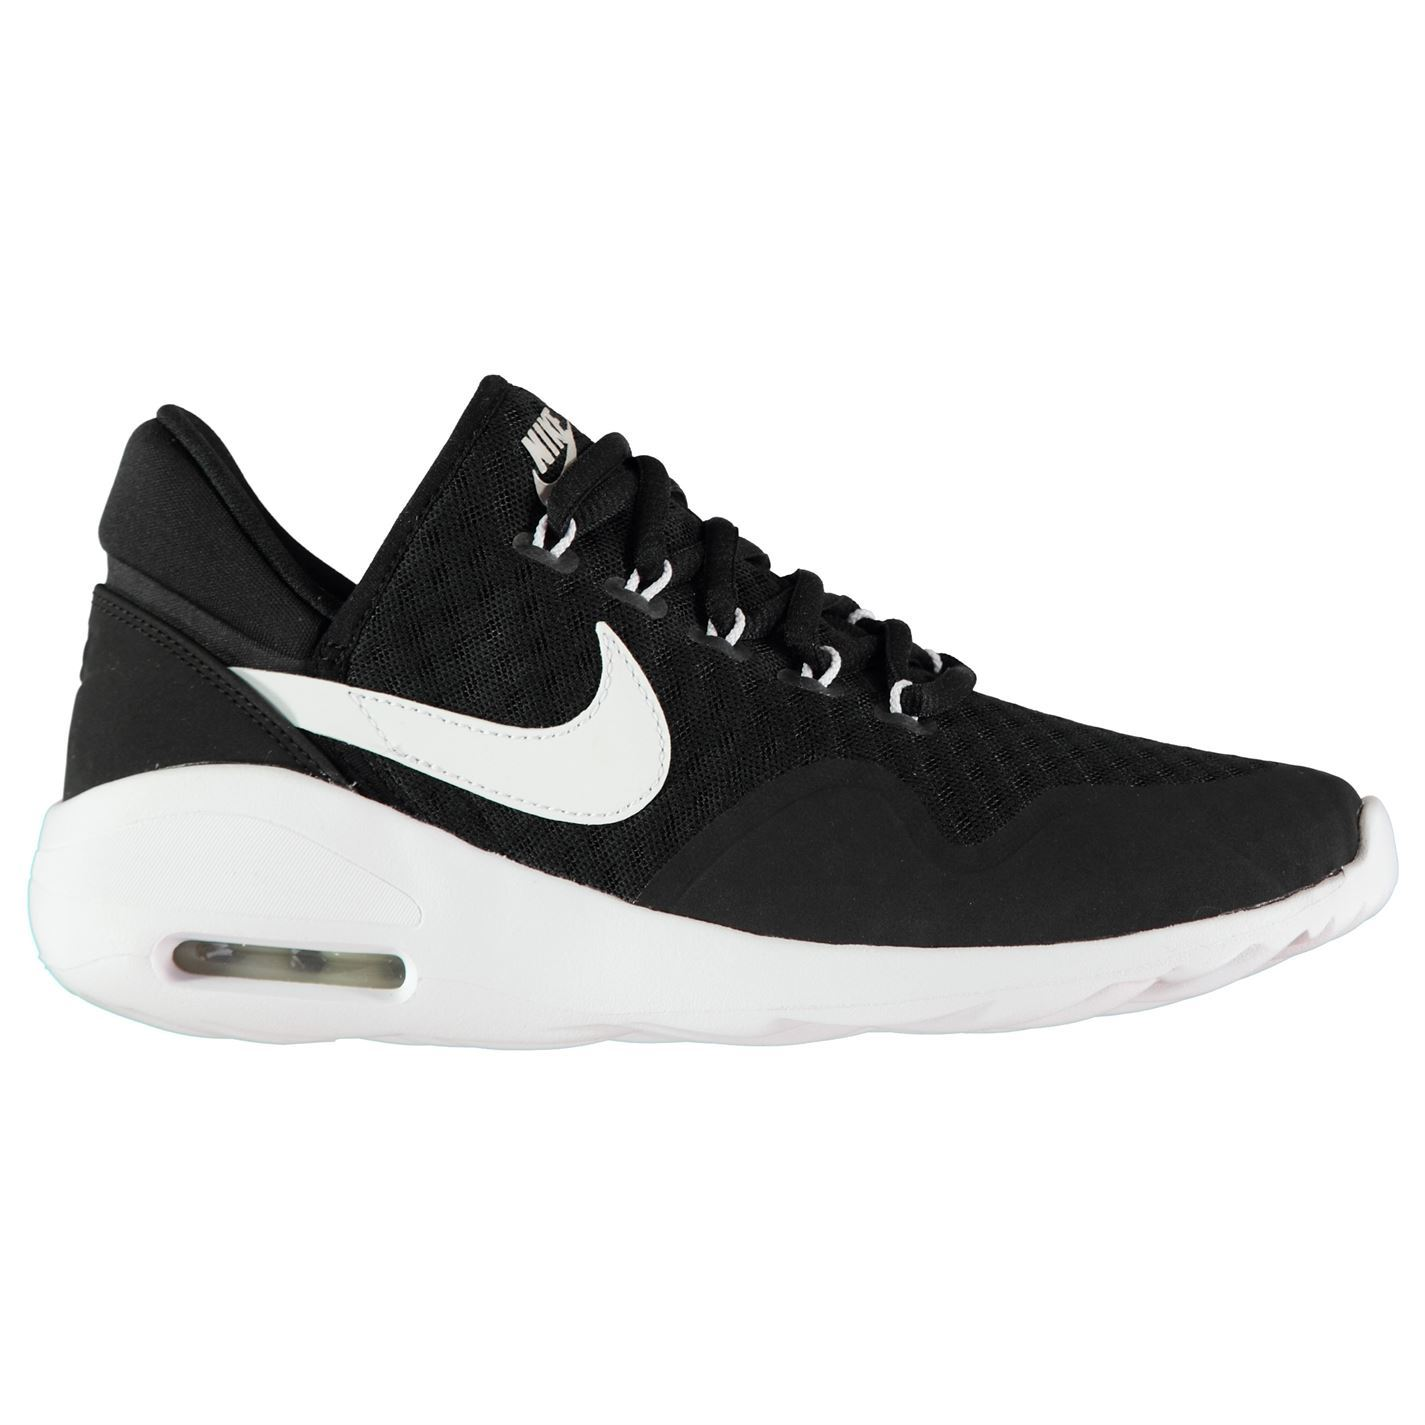 separation shoes b2df5 f0afa ... Nike Air Max Sasha Running Shoes Womens nero bianco Jogging scarpe da  ginnastica scarpe da ...